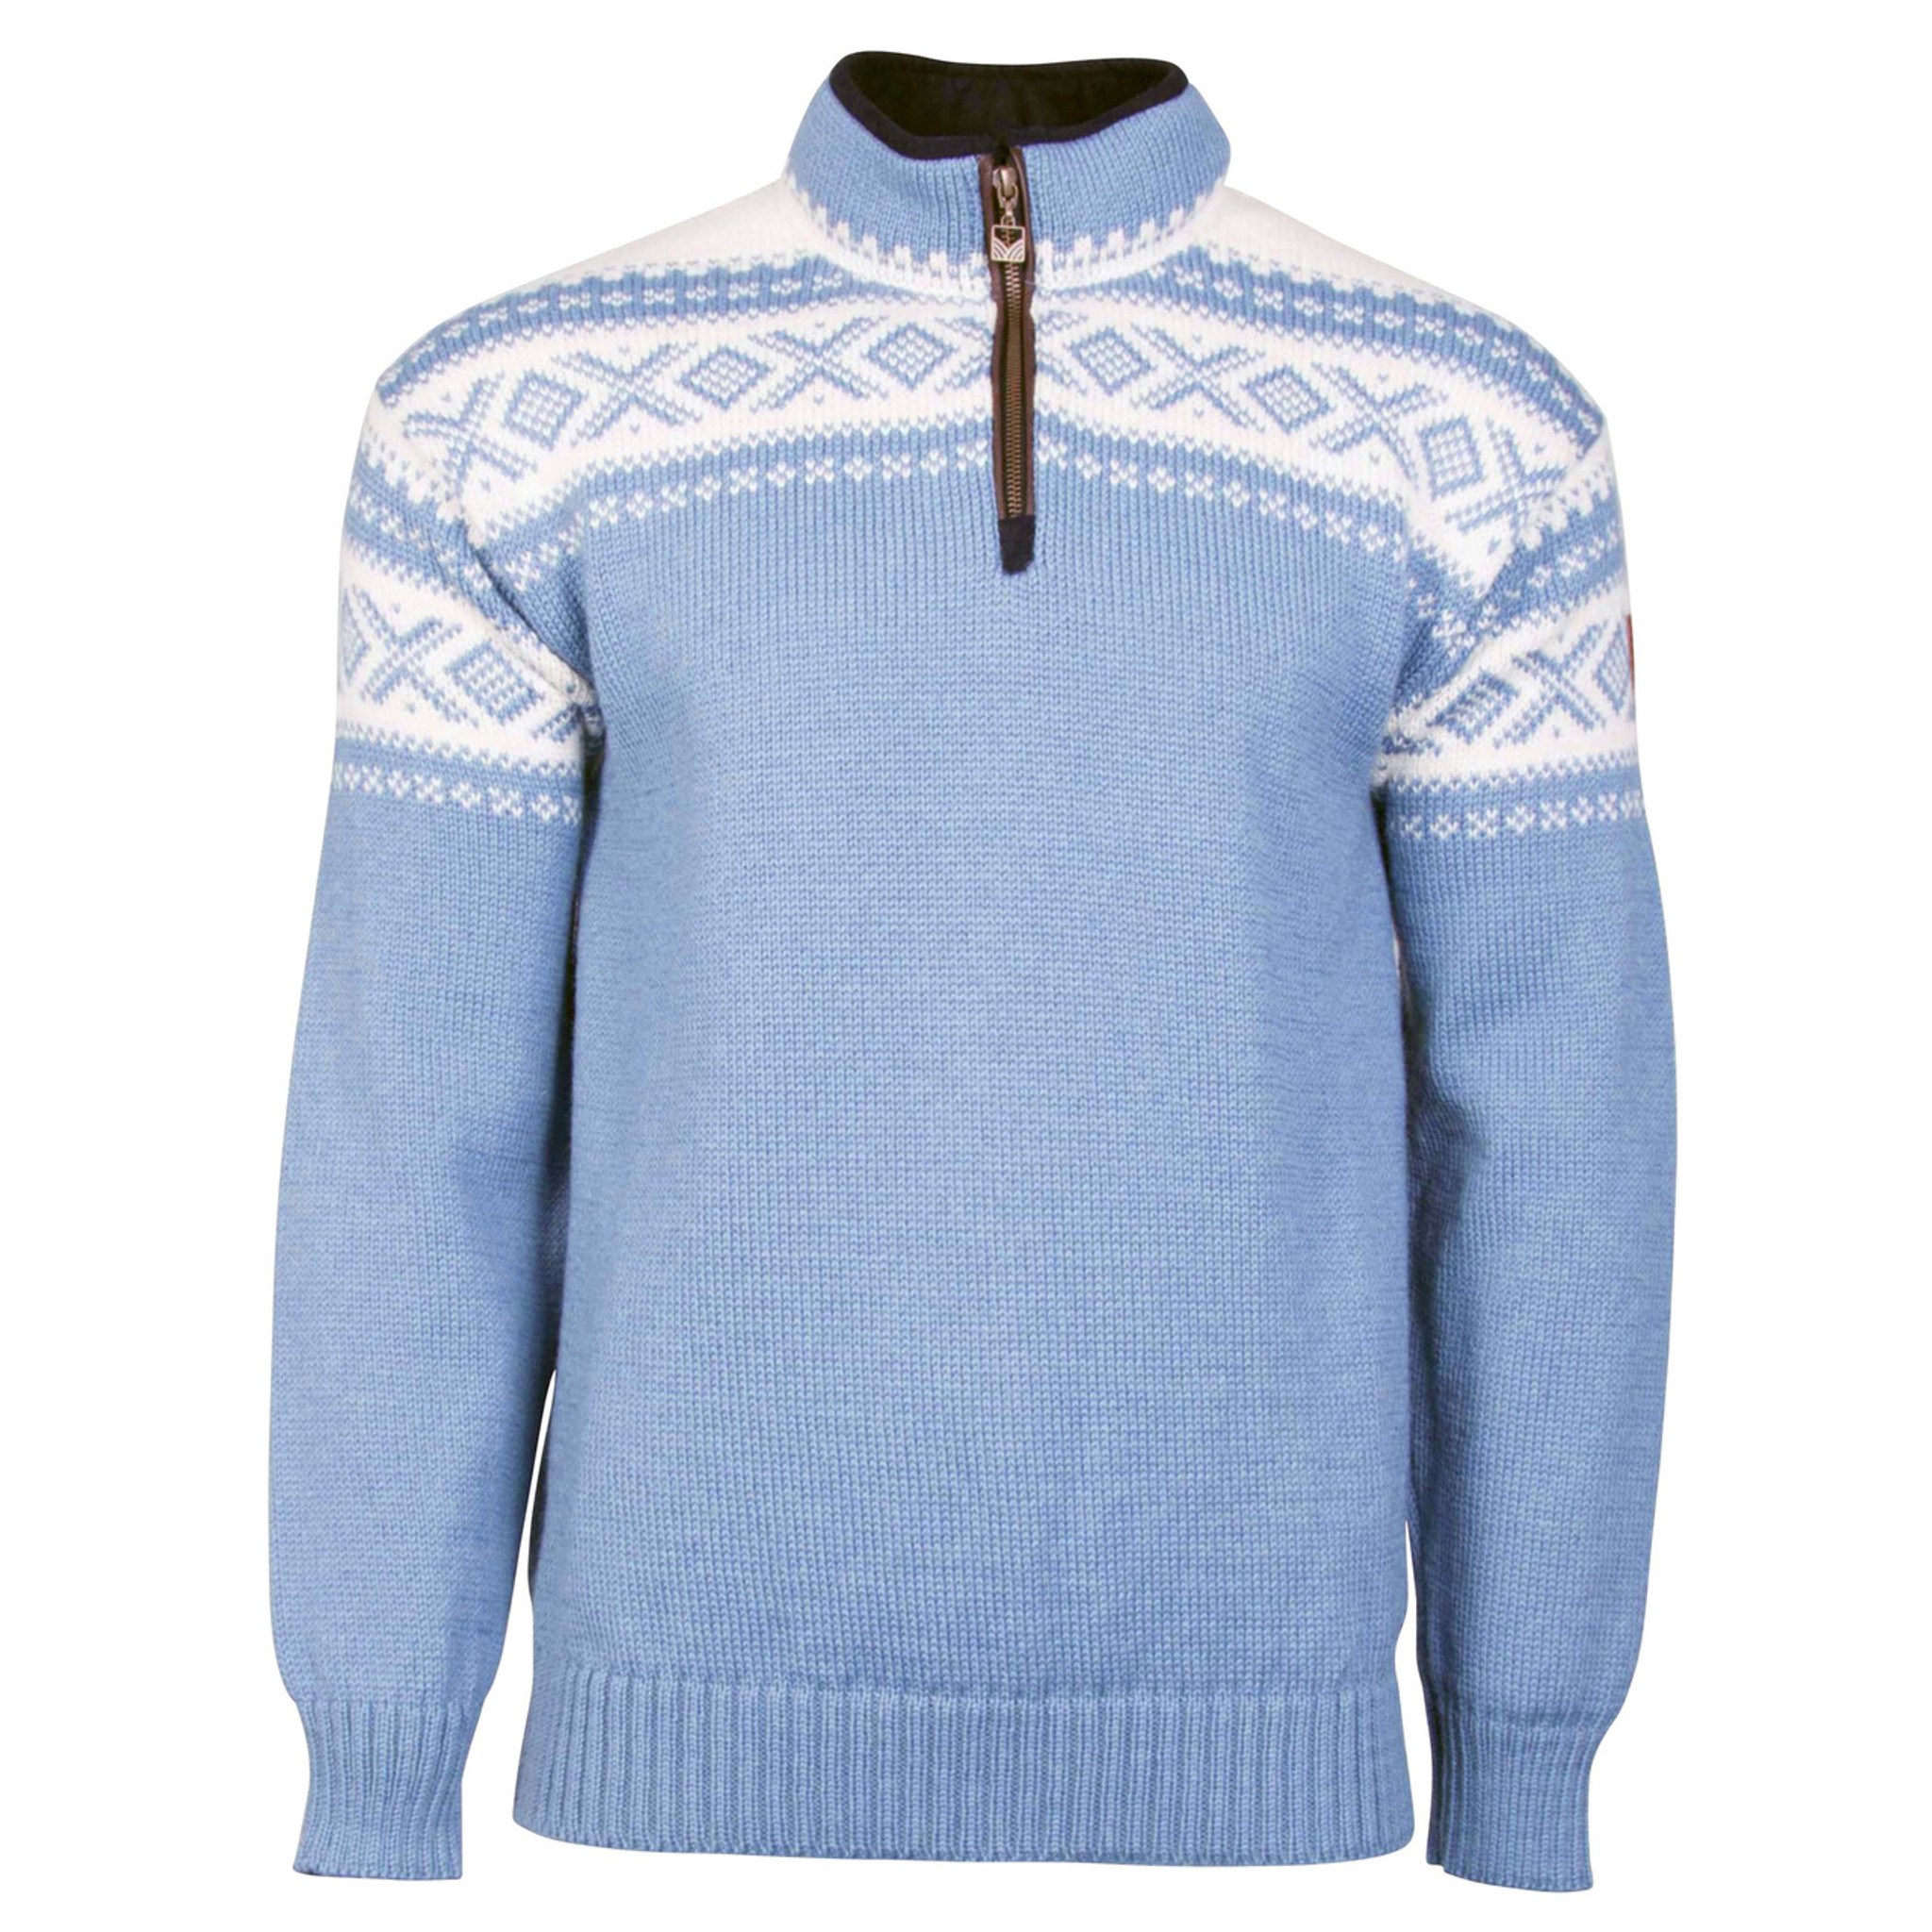 35c6069a Dale of Norway, Cortina Half Zip sweater, Unisex, in Blue Shadow/Off Click  to enlarge